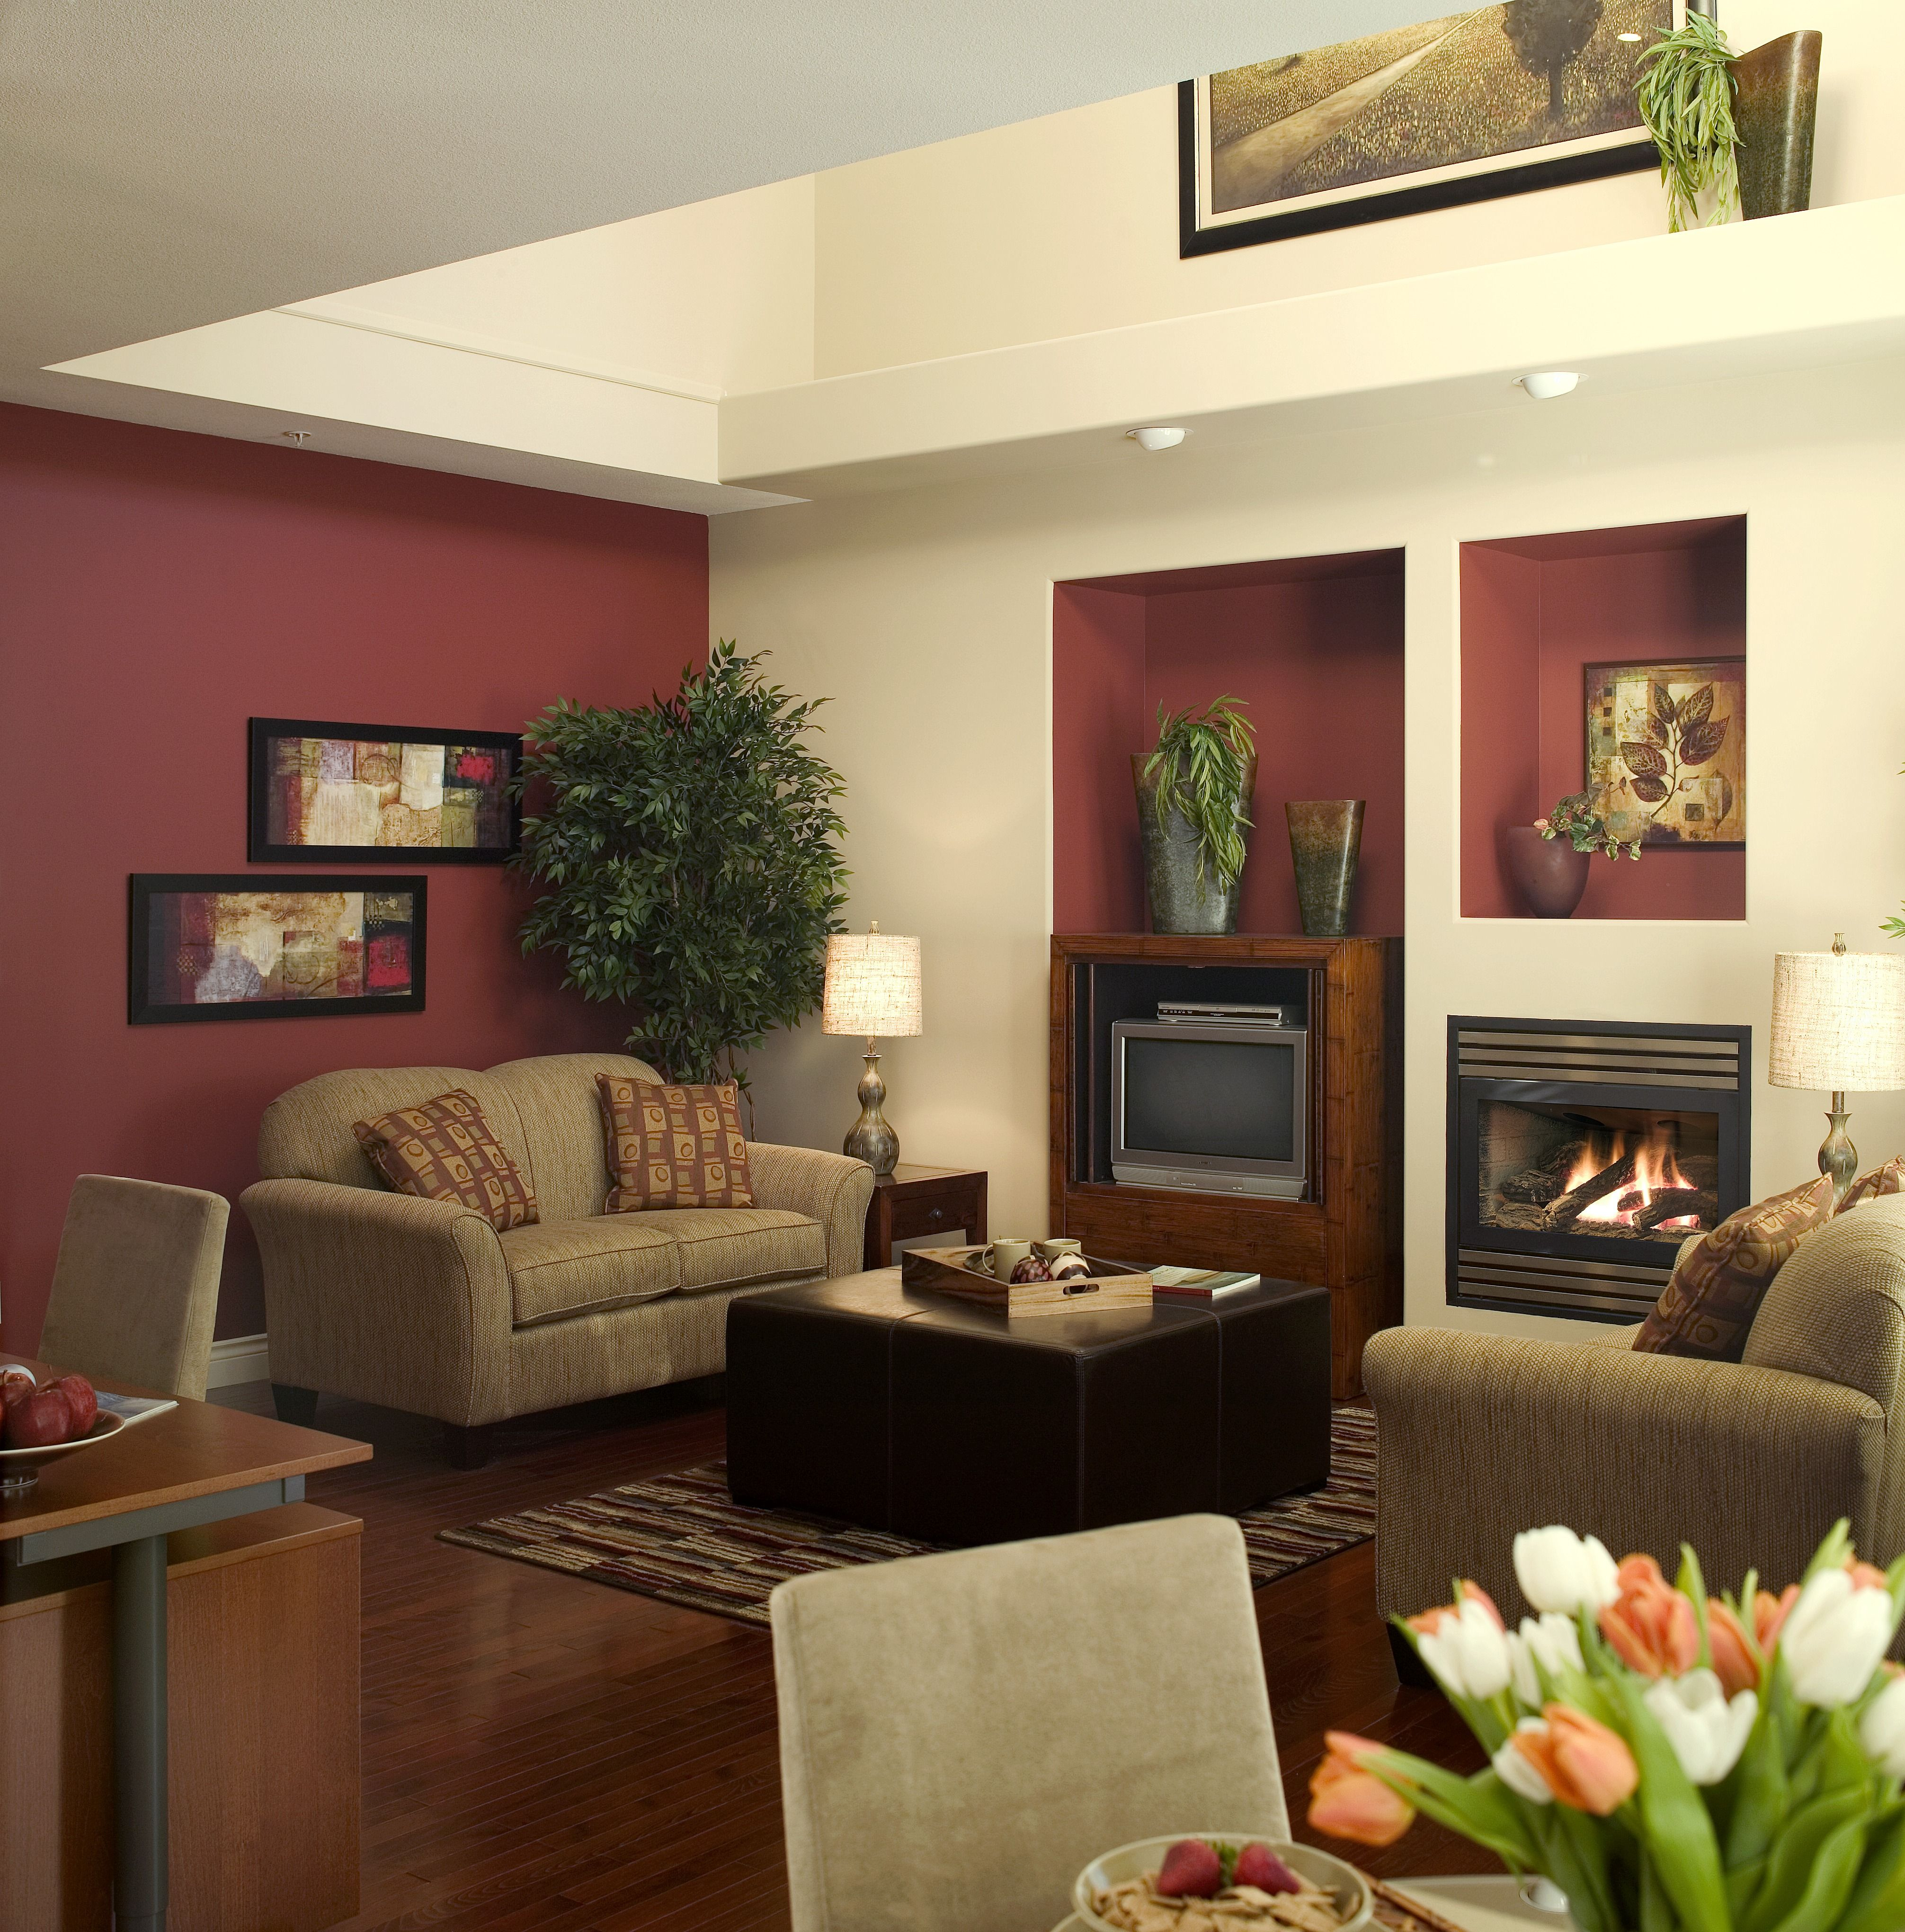 Decorating Ideas For Living Room With White Walls: Popular House Paint Colors For 2014